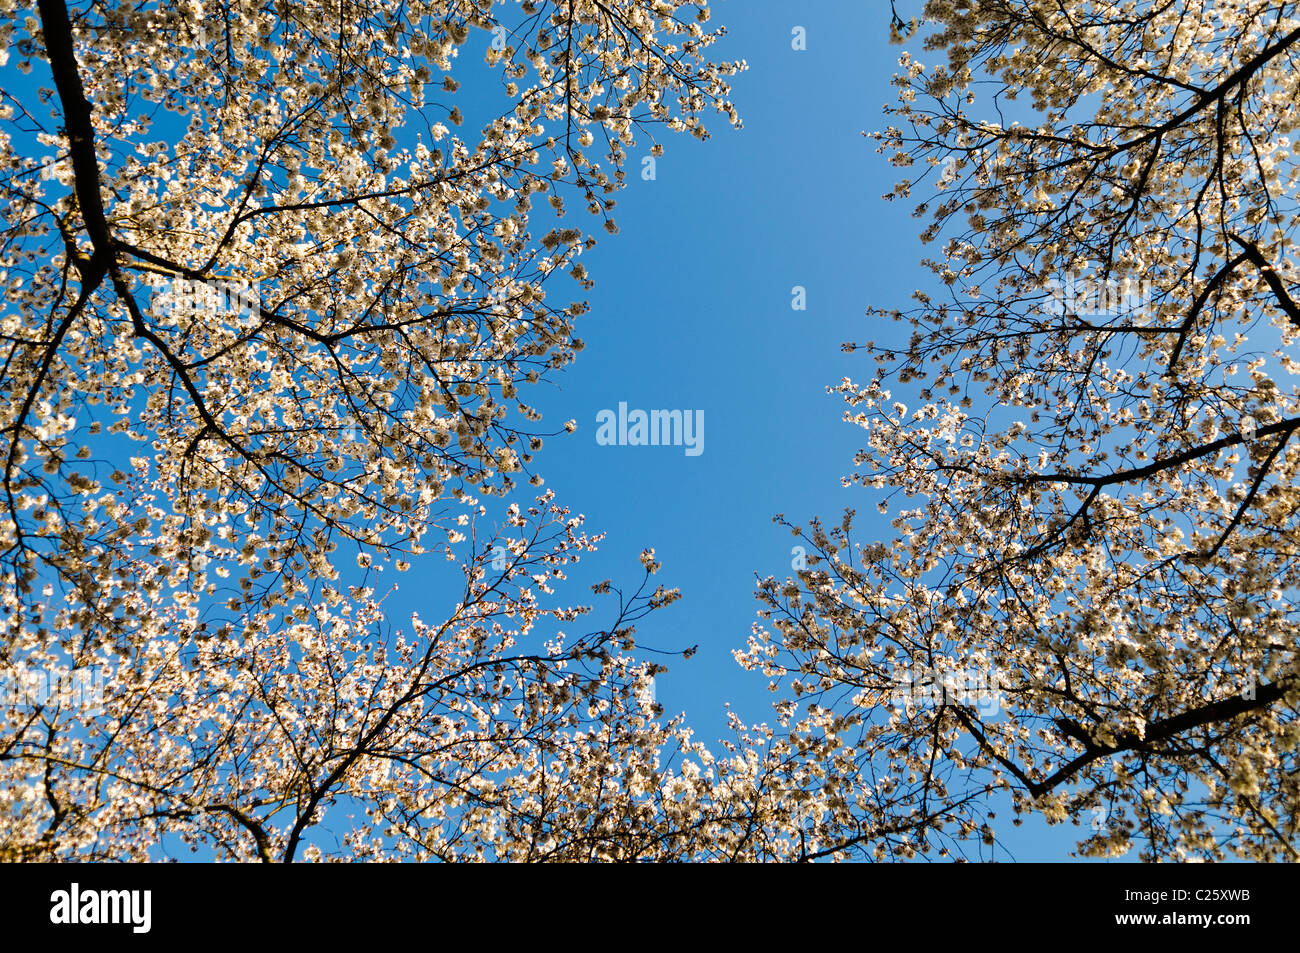 WASHINGTON DC, USA - Branches laden with Cherry Blossom flowers ring the frame, with clear blue sky in the middle - Stock Image